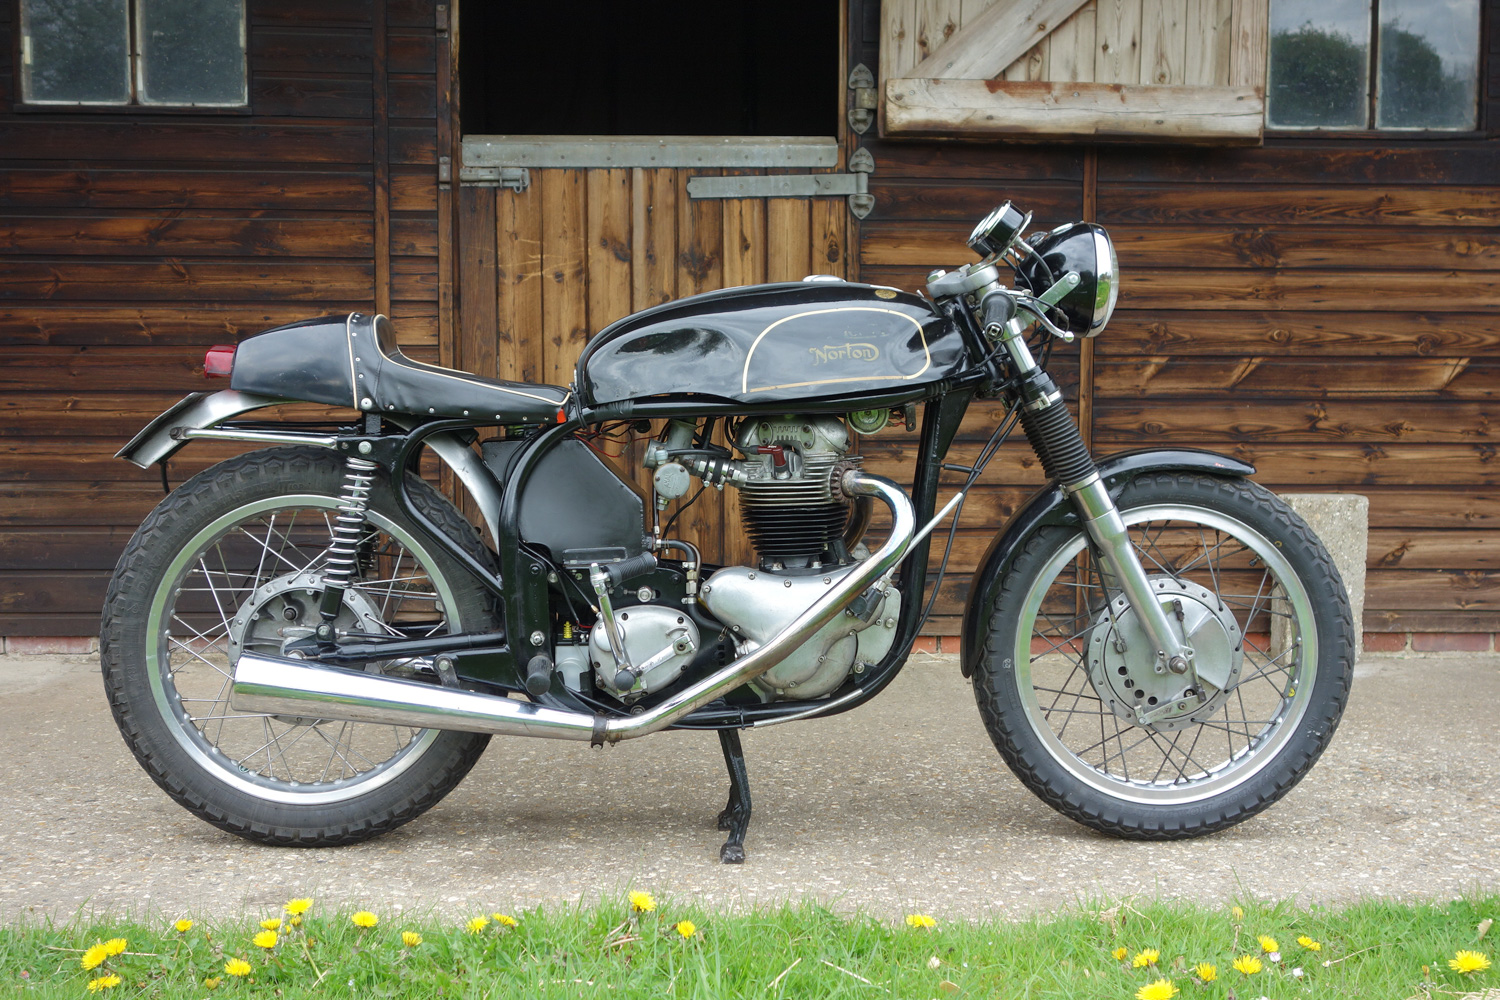 1960 Norton Dominator SS650 side view